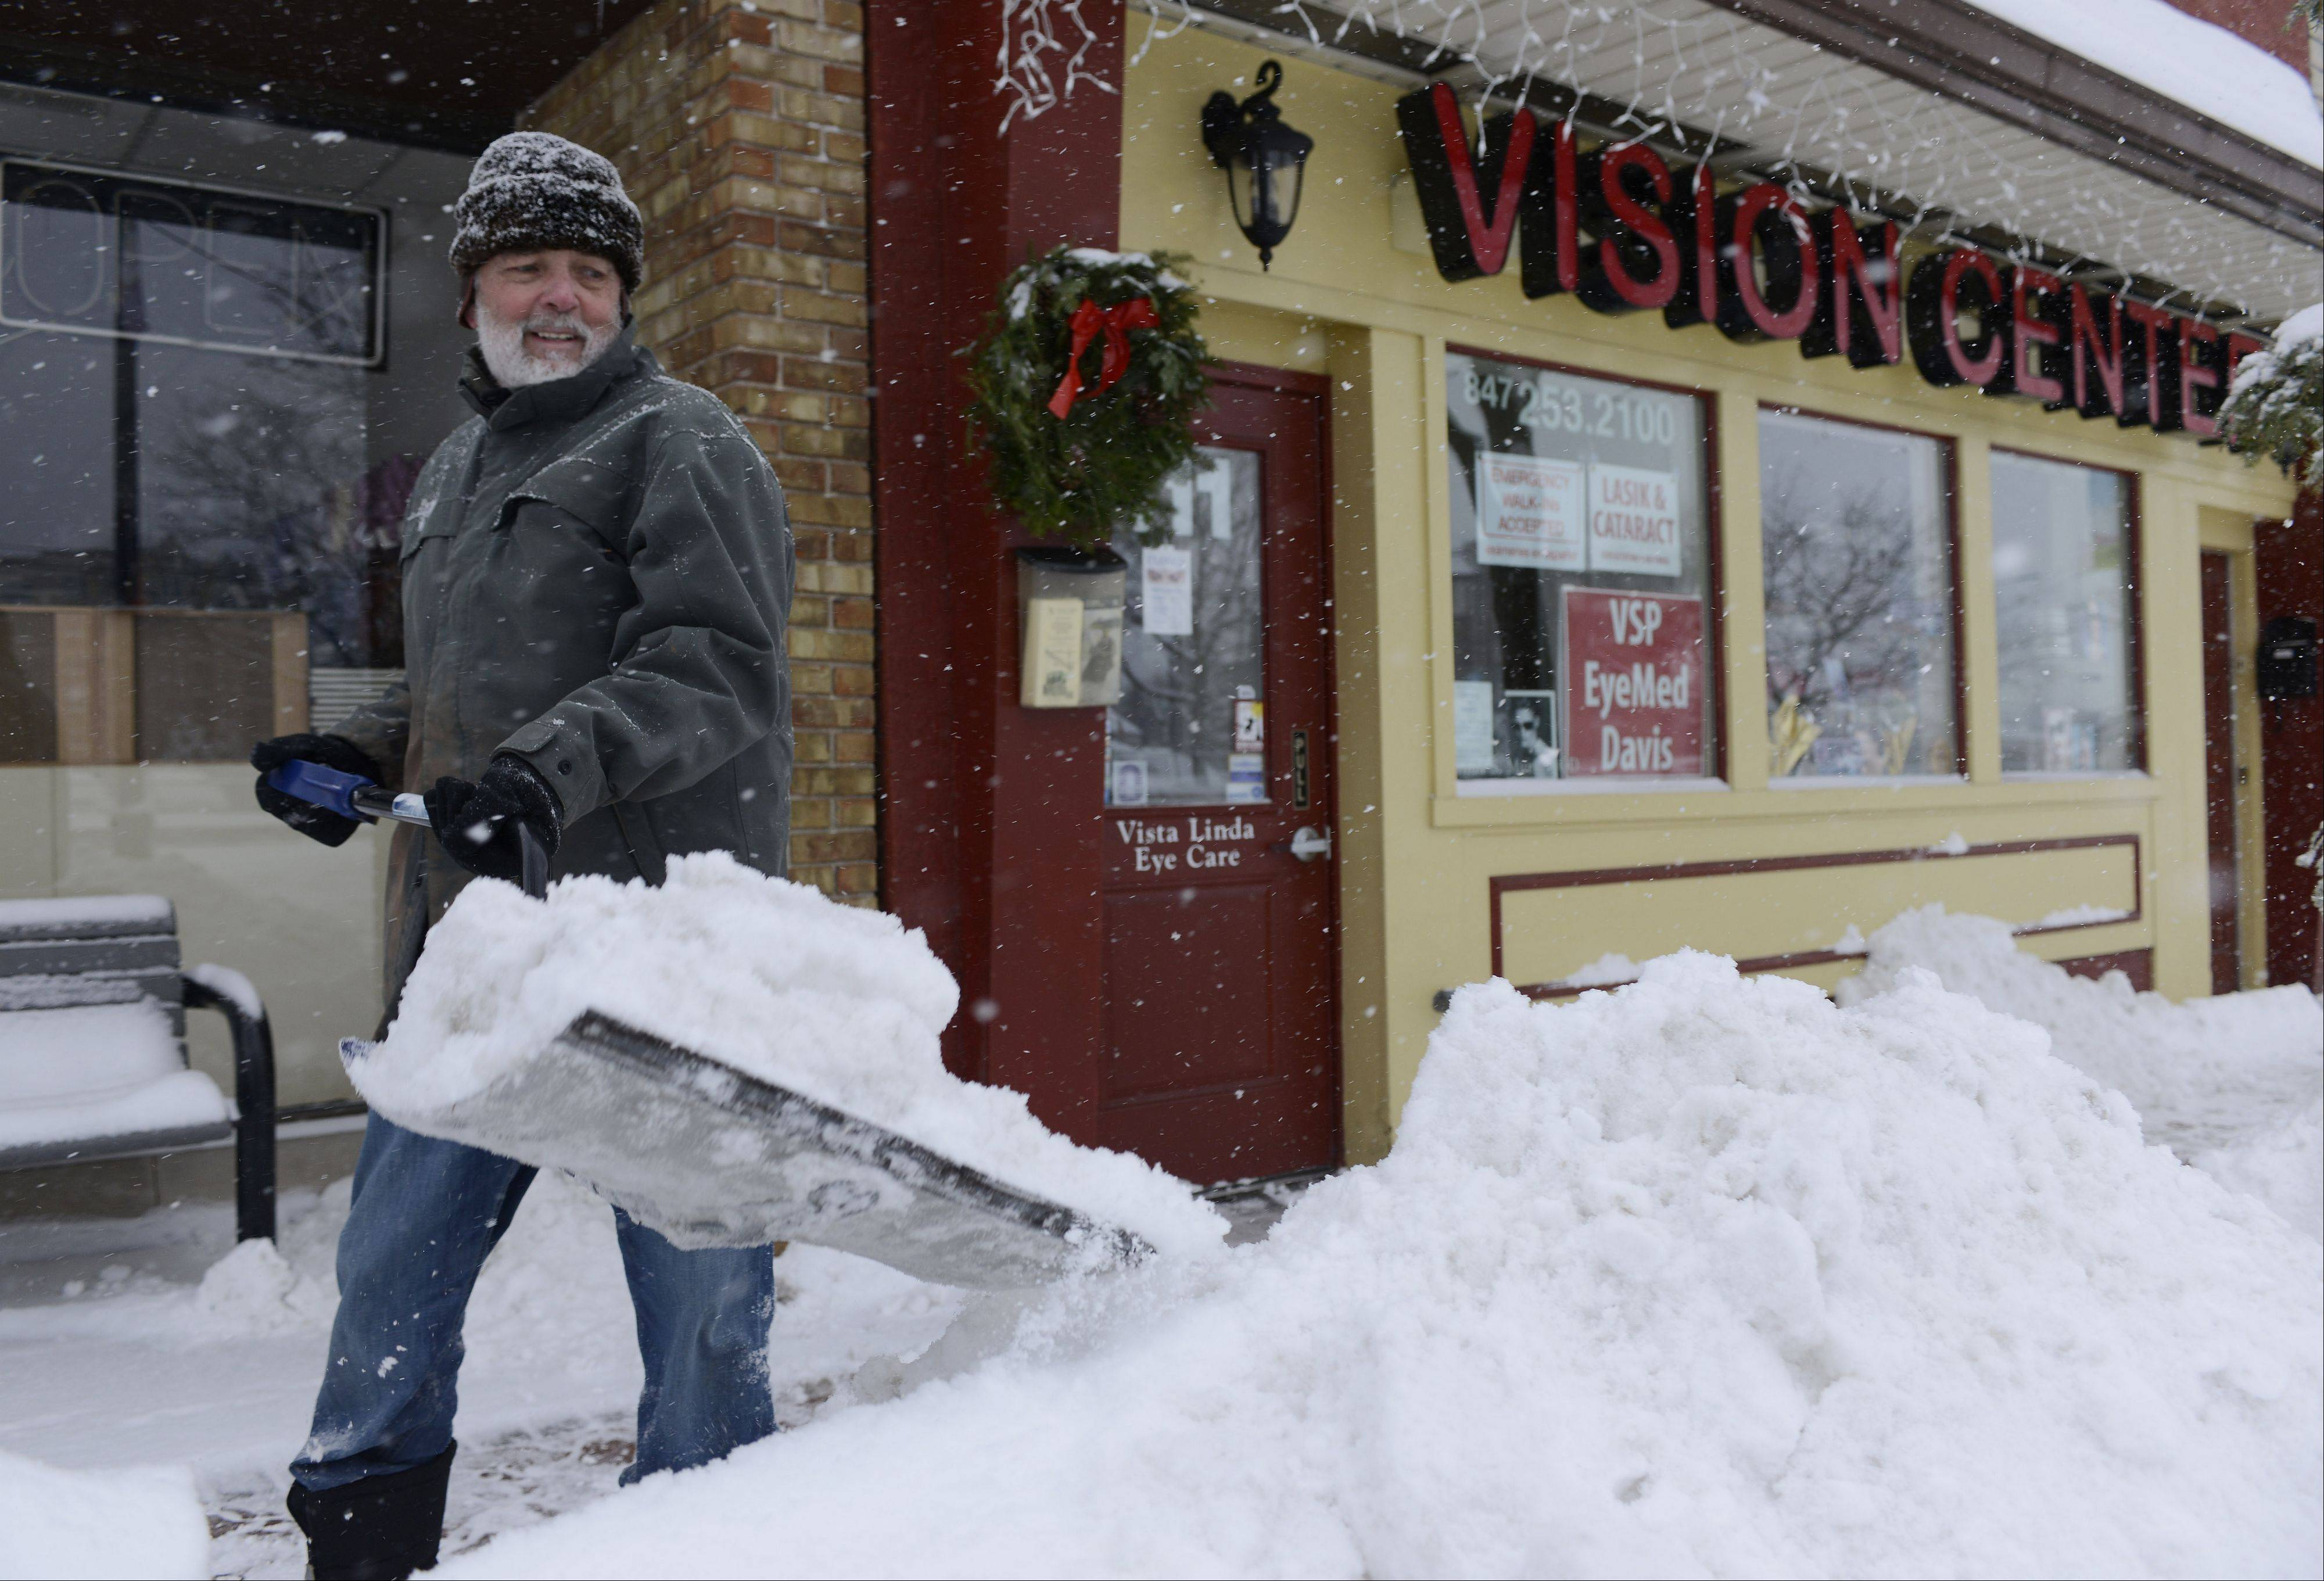 Some suburban business hit by storm, while others take advantage of it